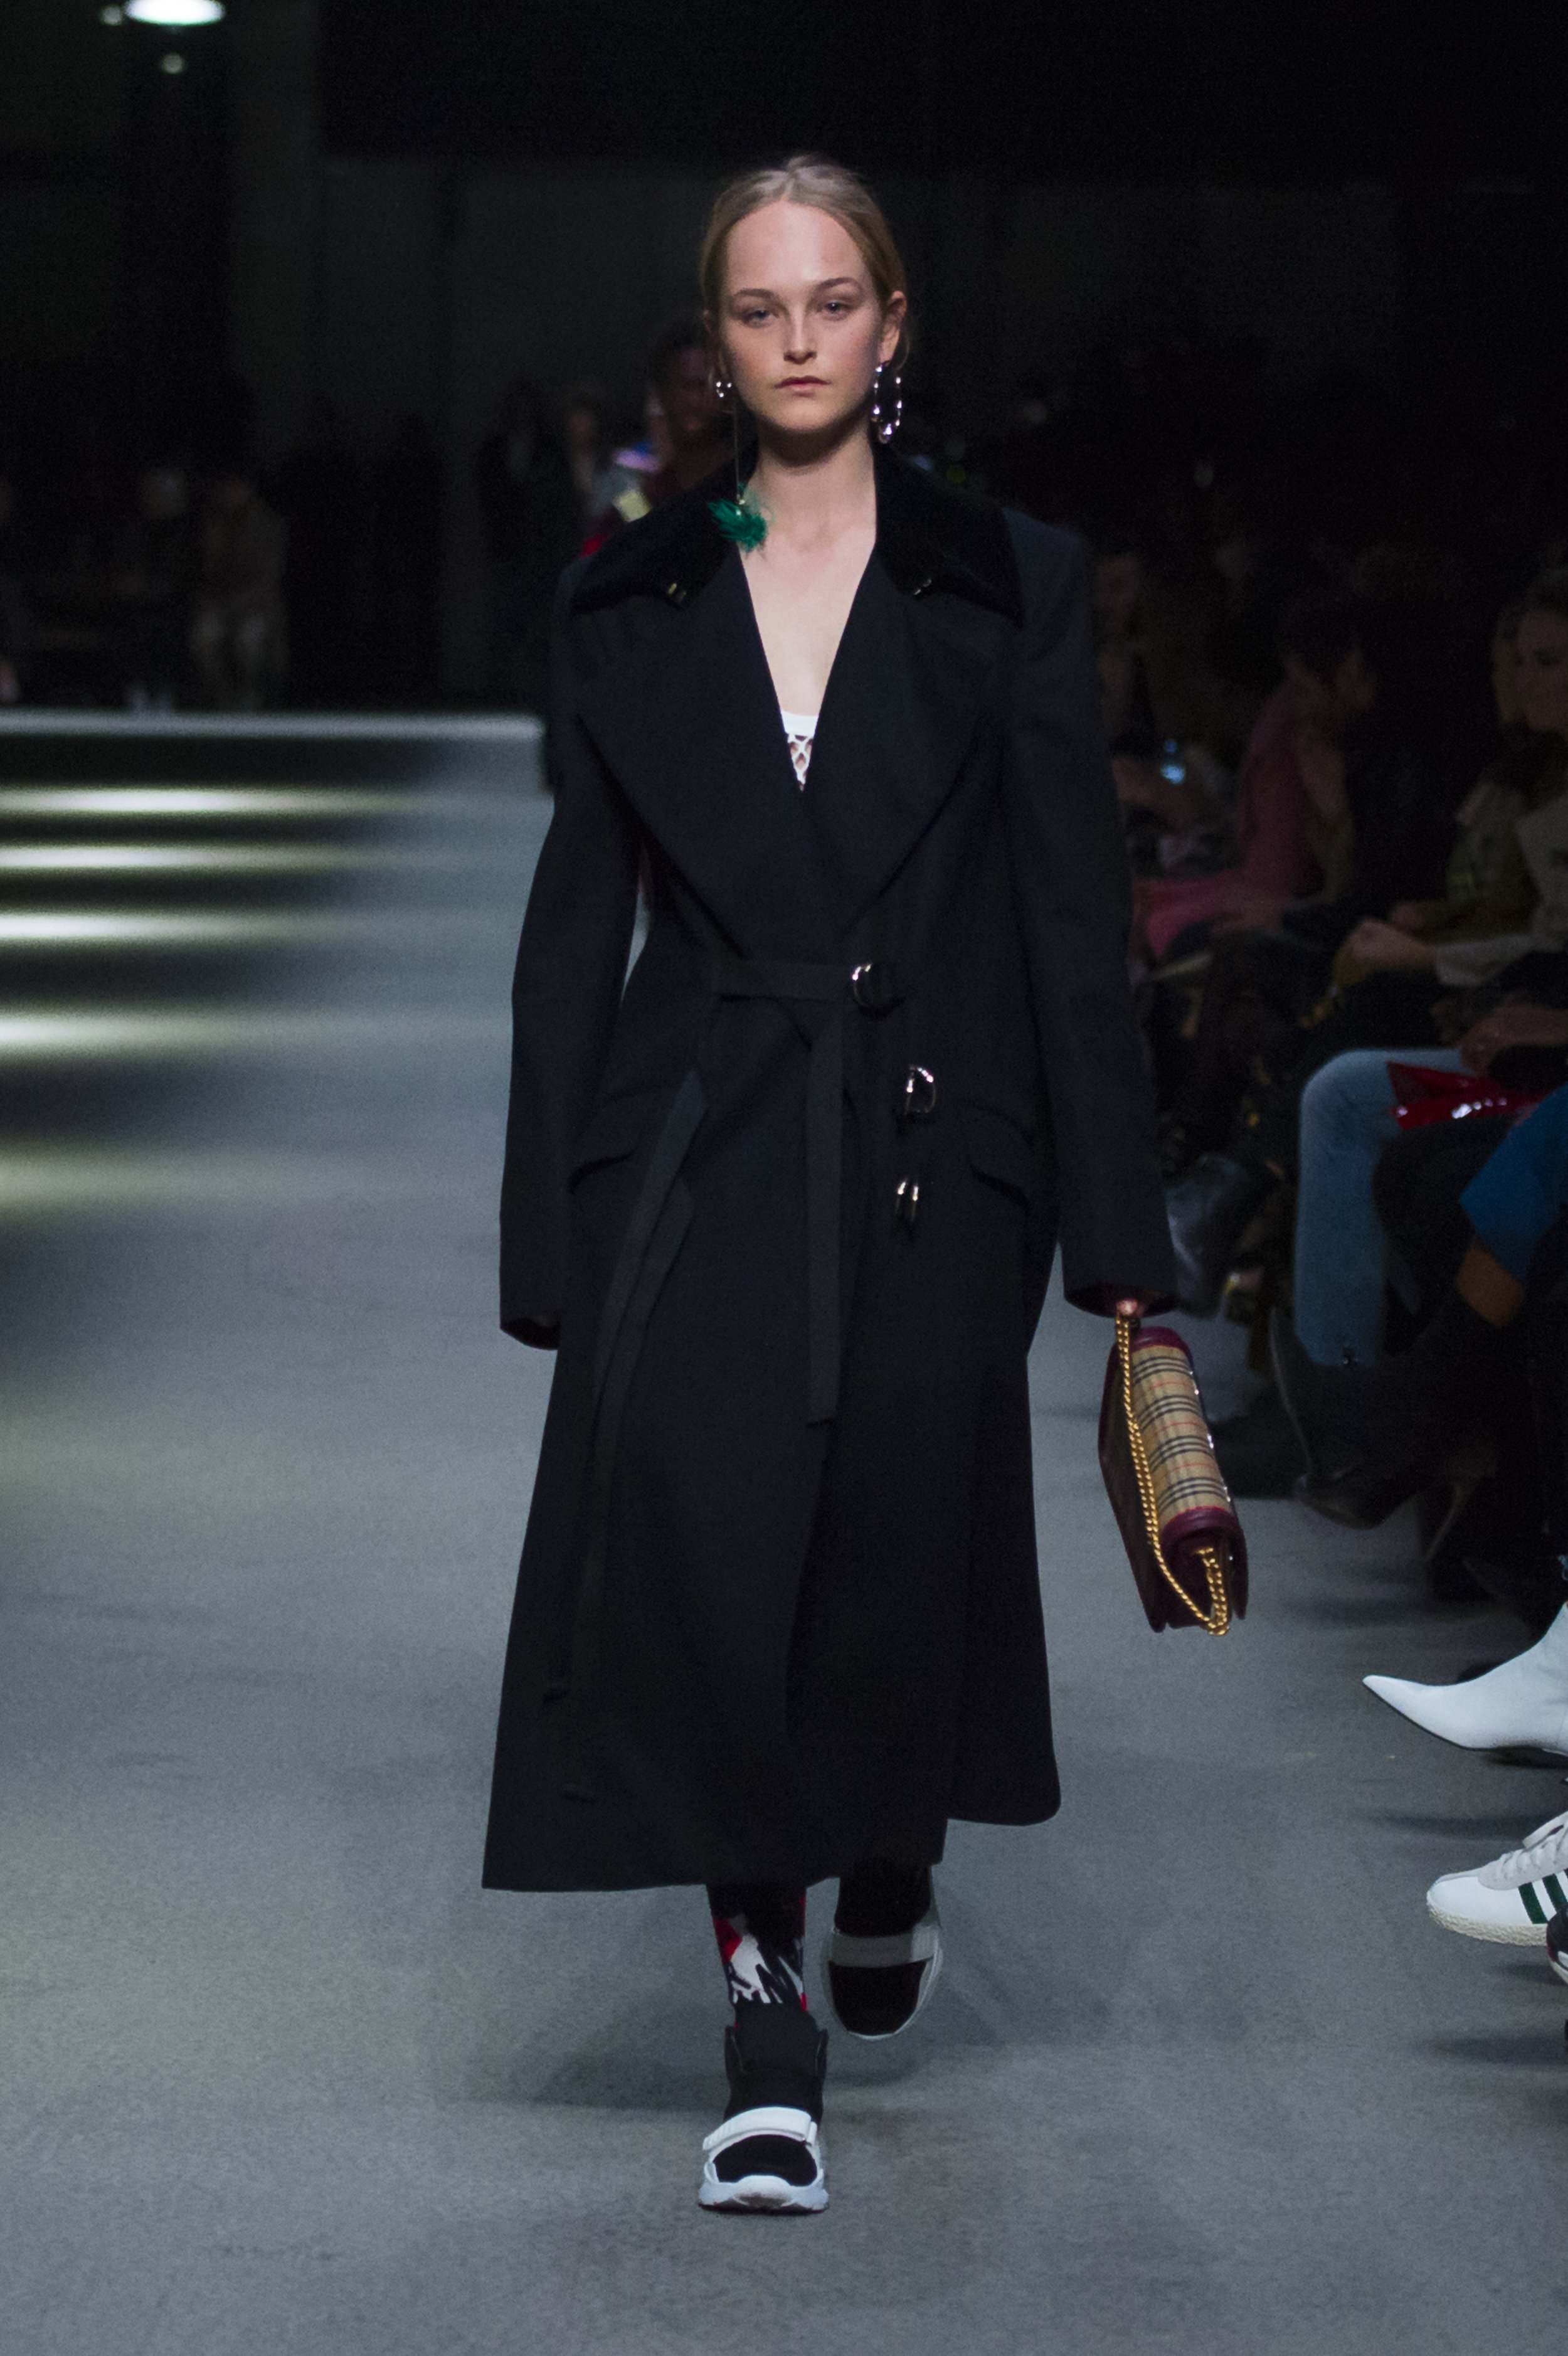 Burberry February Collection 2018 - Look 42.jpg